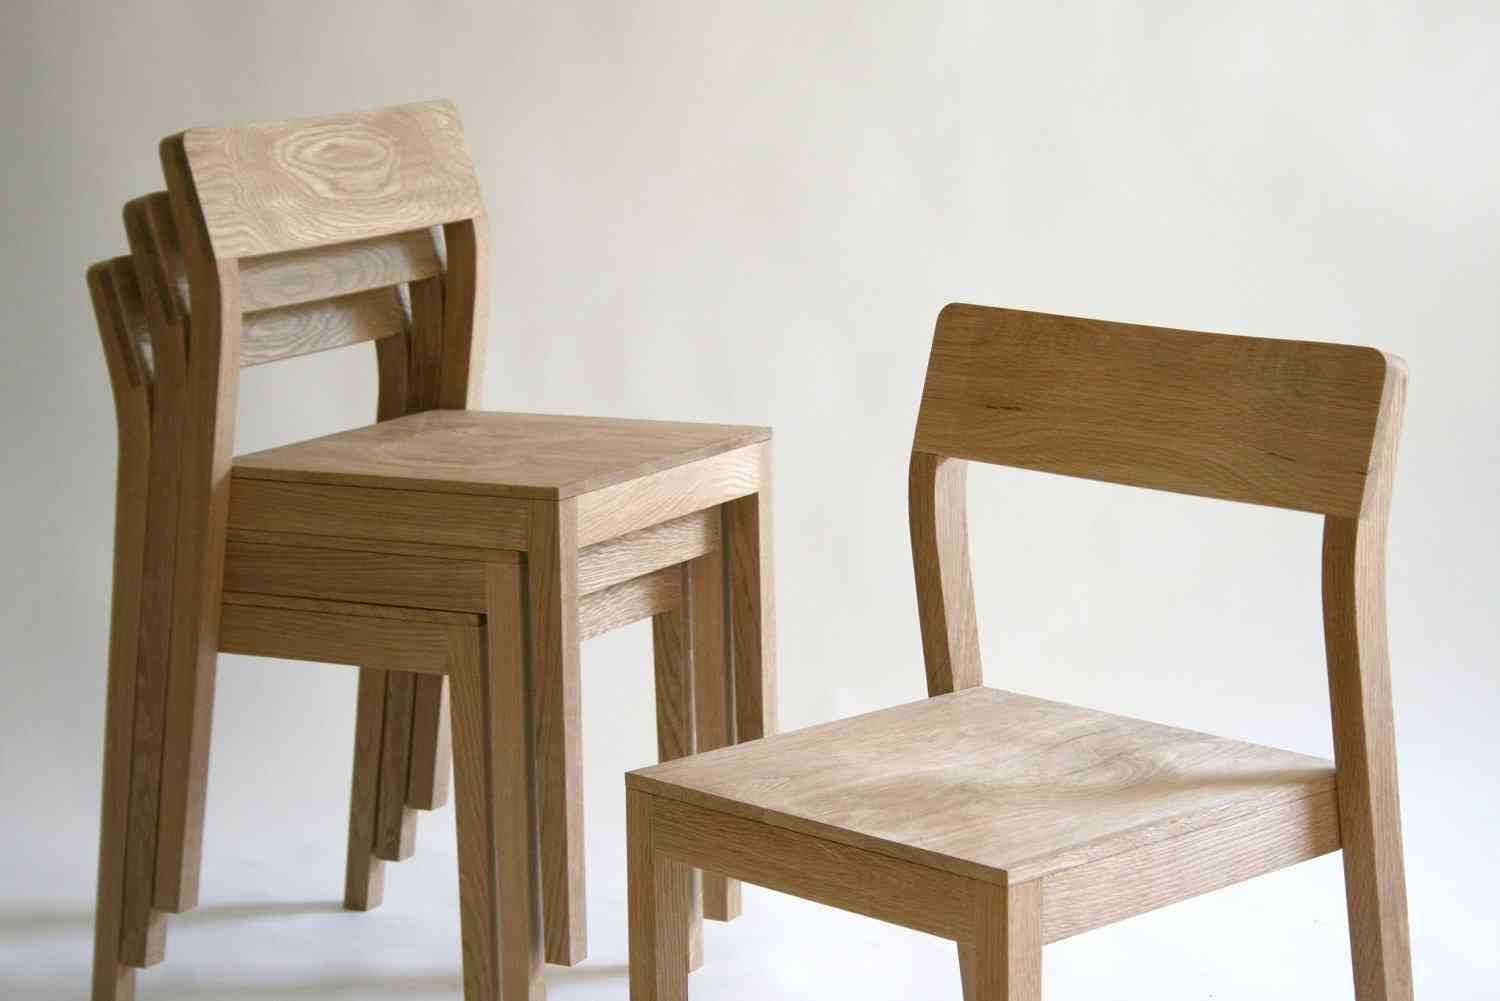 delightful Simple Dining Chairs images